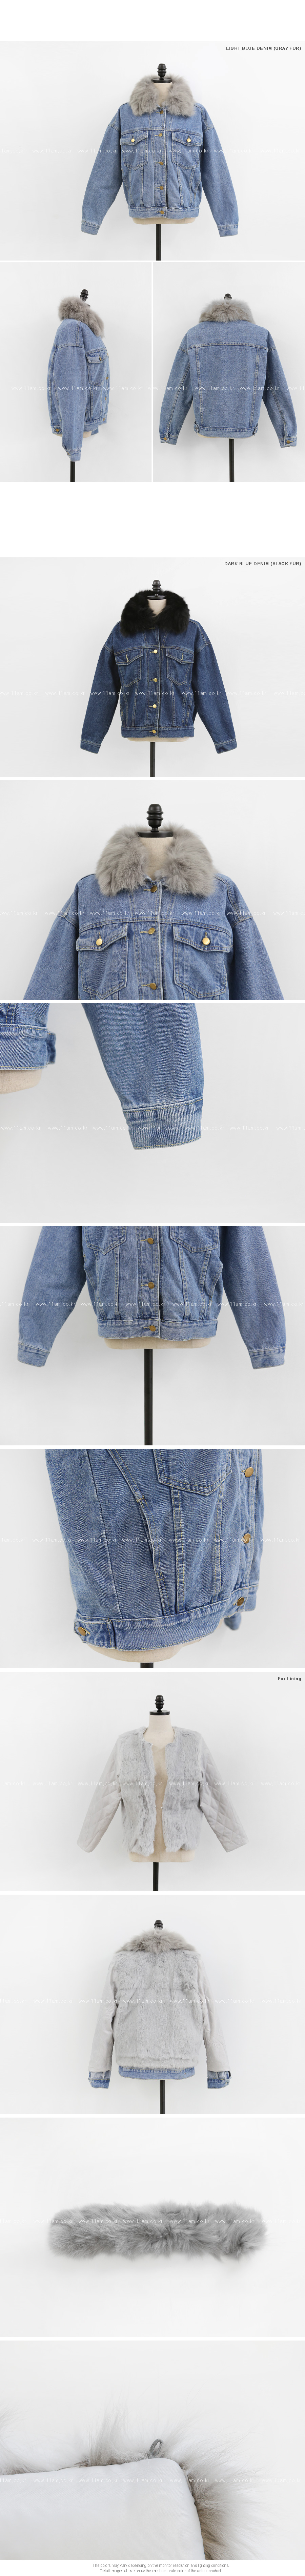 Fur Lined Denim Jacket|